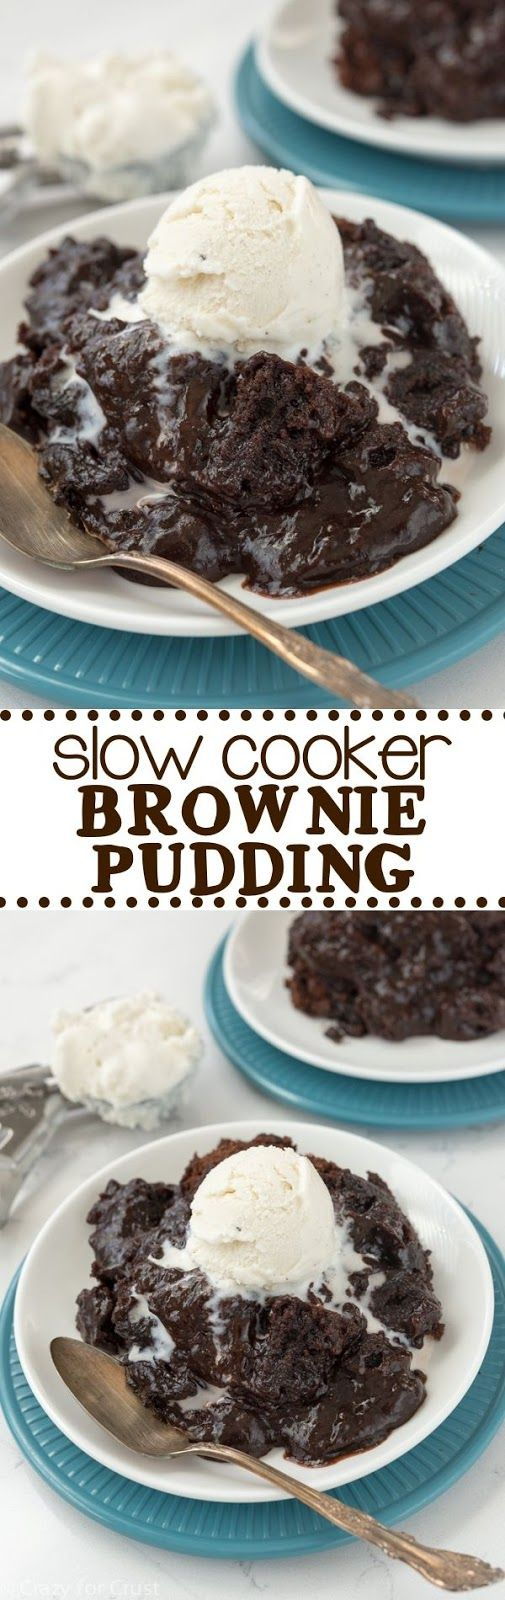 Healthy Recipes and Cooking Tips: SLOW COOKER BROWNIE PUDDING